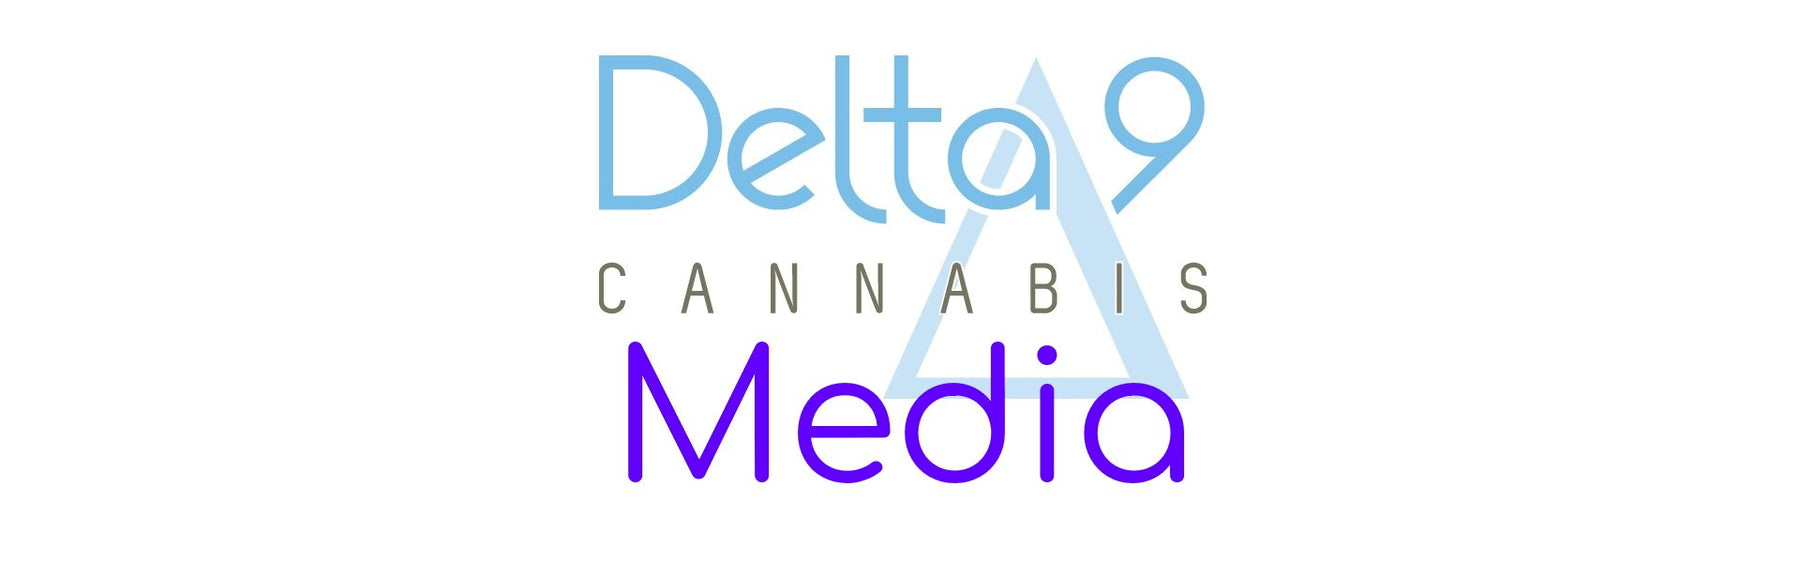 What To Expect in 2020 from the Cannabis Sector - Delta 9 on FTMIG Show